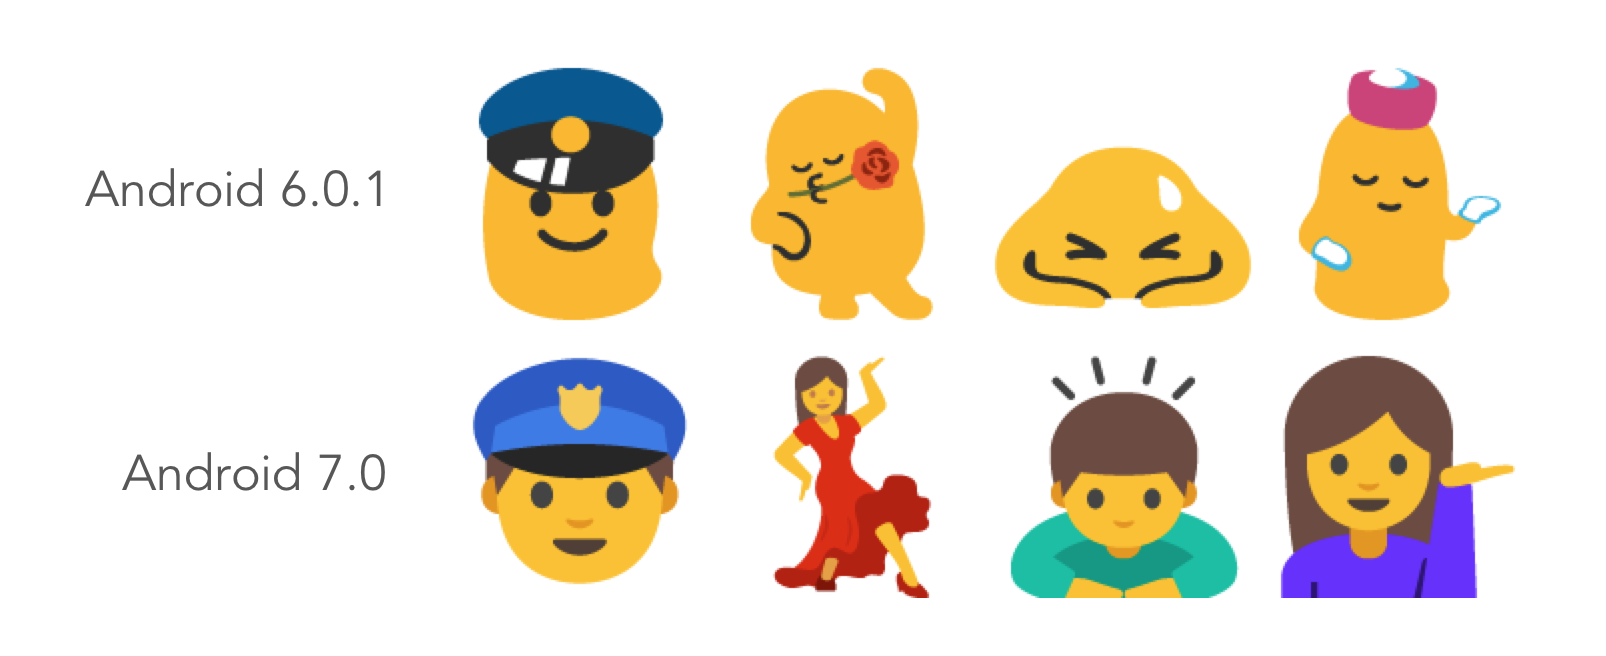 Android 70 nougat emoji changelog say farewell to worm like police officer blobby casonnova jelly bean sweat bow and glove wearing information desk thimble and hello to their new human buycottarizona